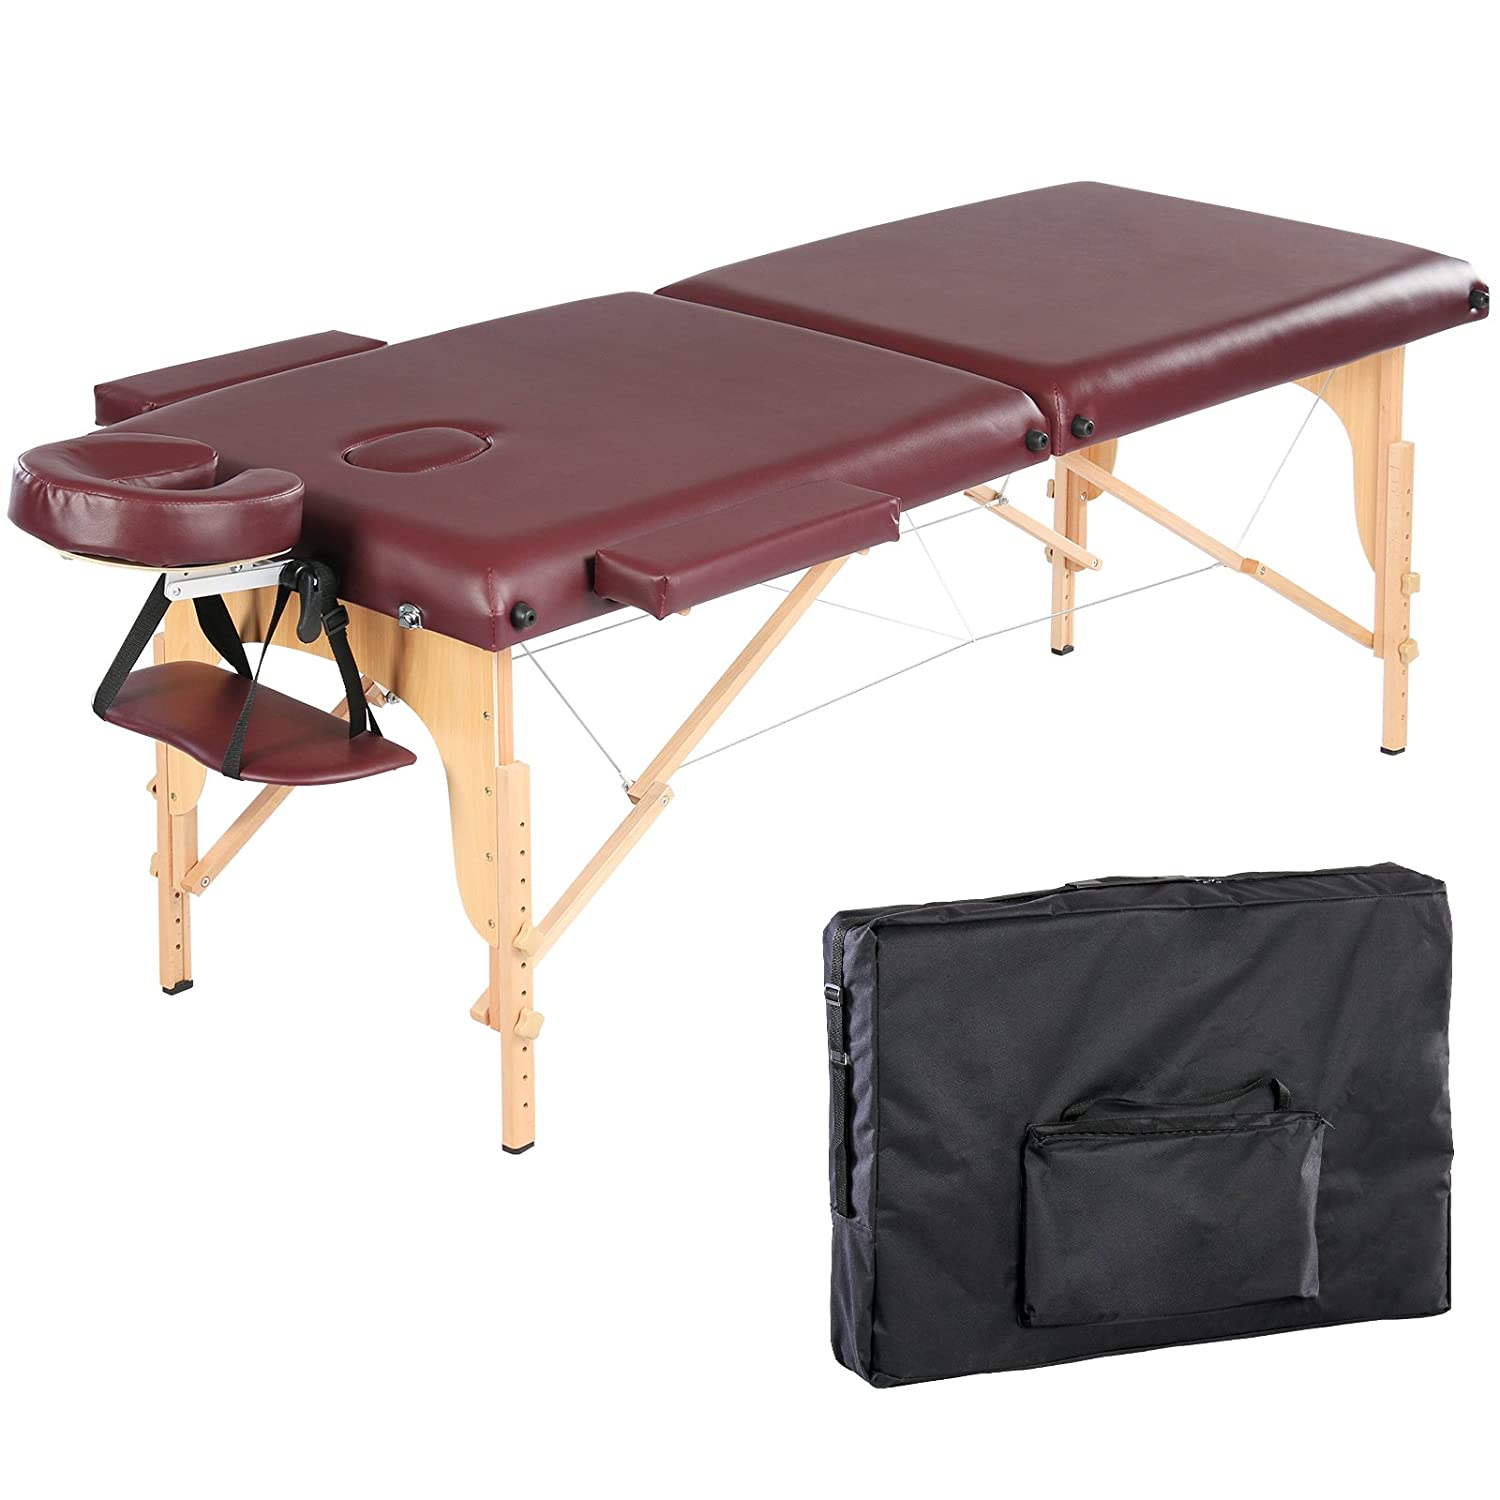 Artechworks 84 Professional 2 Folding Portable Lightweight Massage Table Facial Solon Spa Tattoo Bed With Aluminium Leg(2.56 Thick Cushion of Foam) Acrofine Industrial Co. Ltd AT201-2200